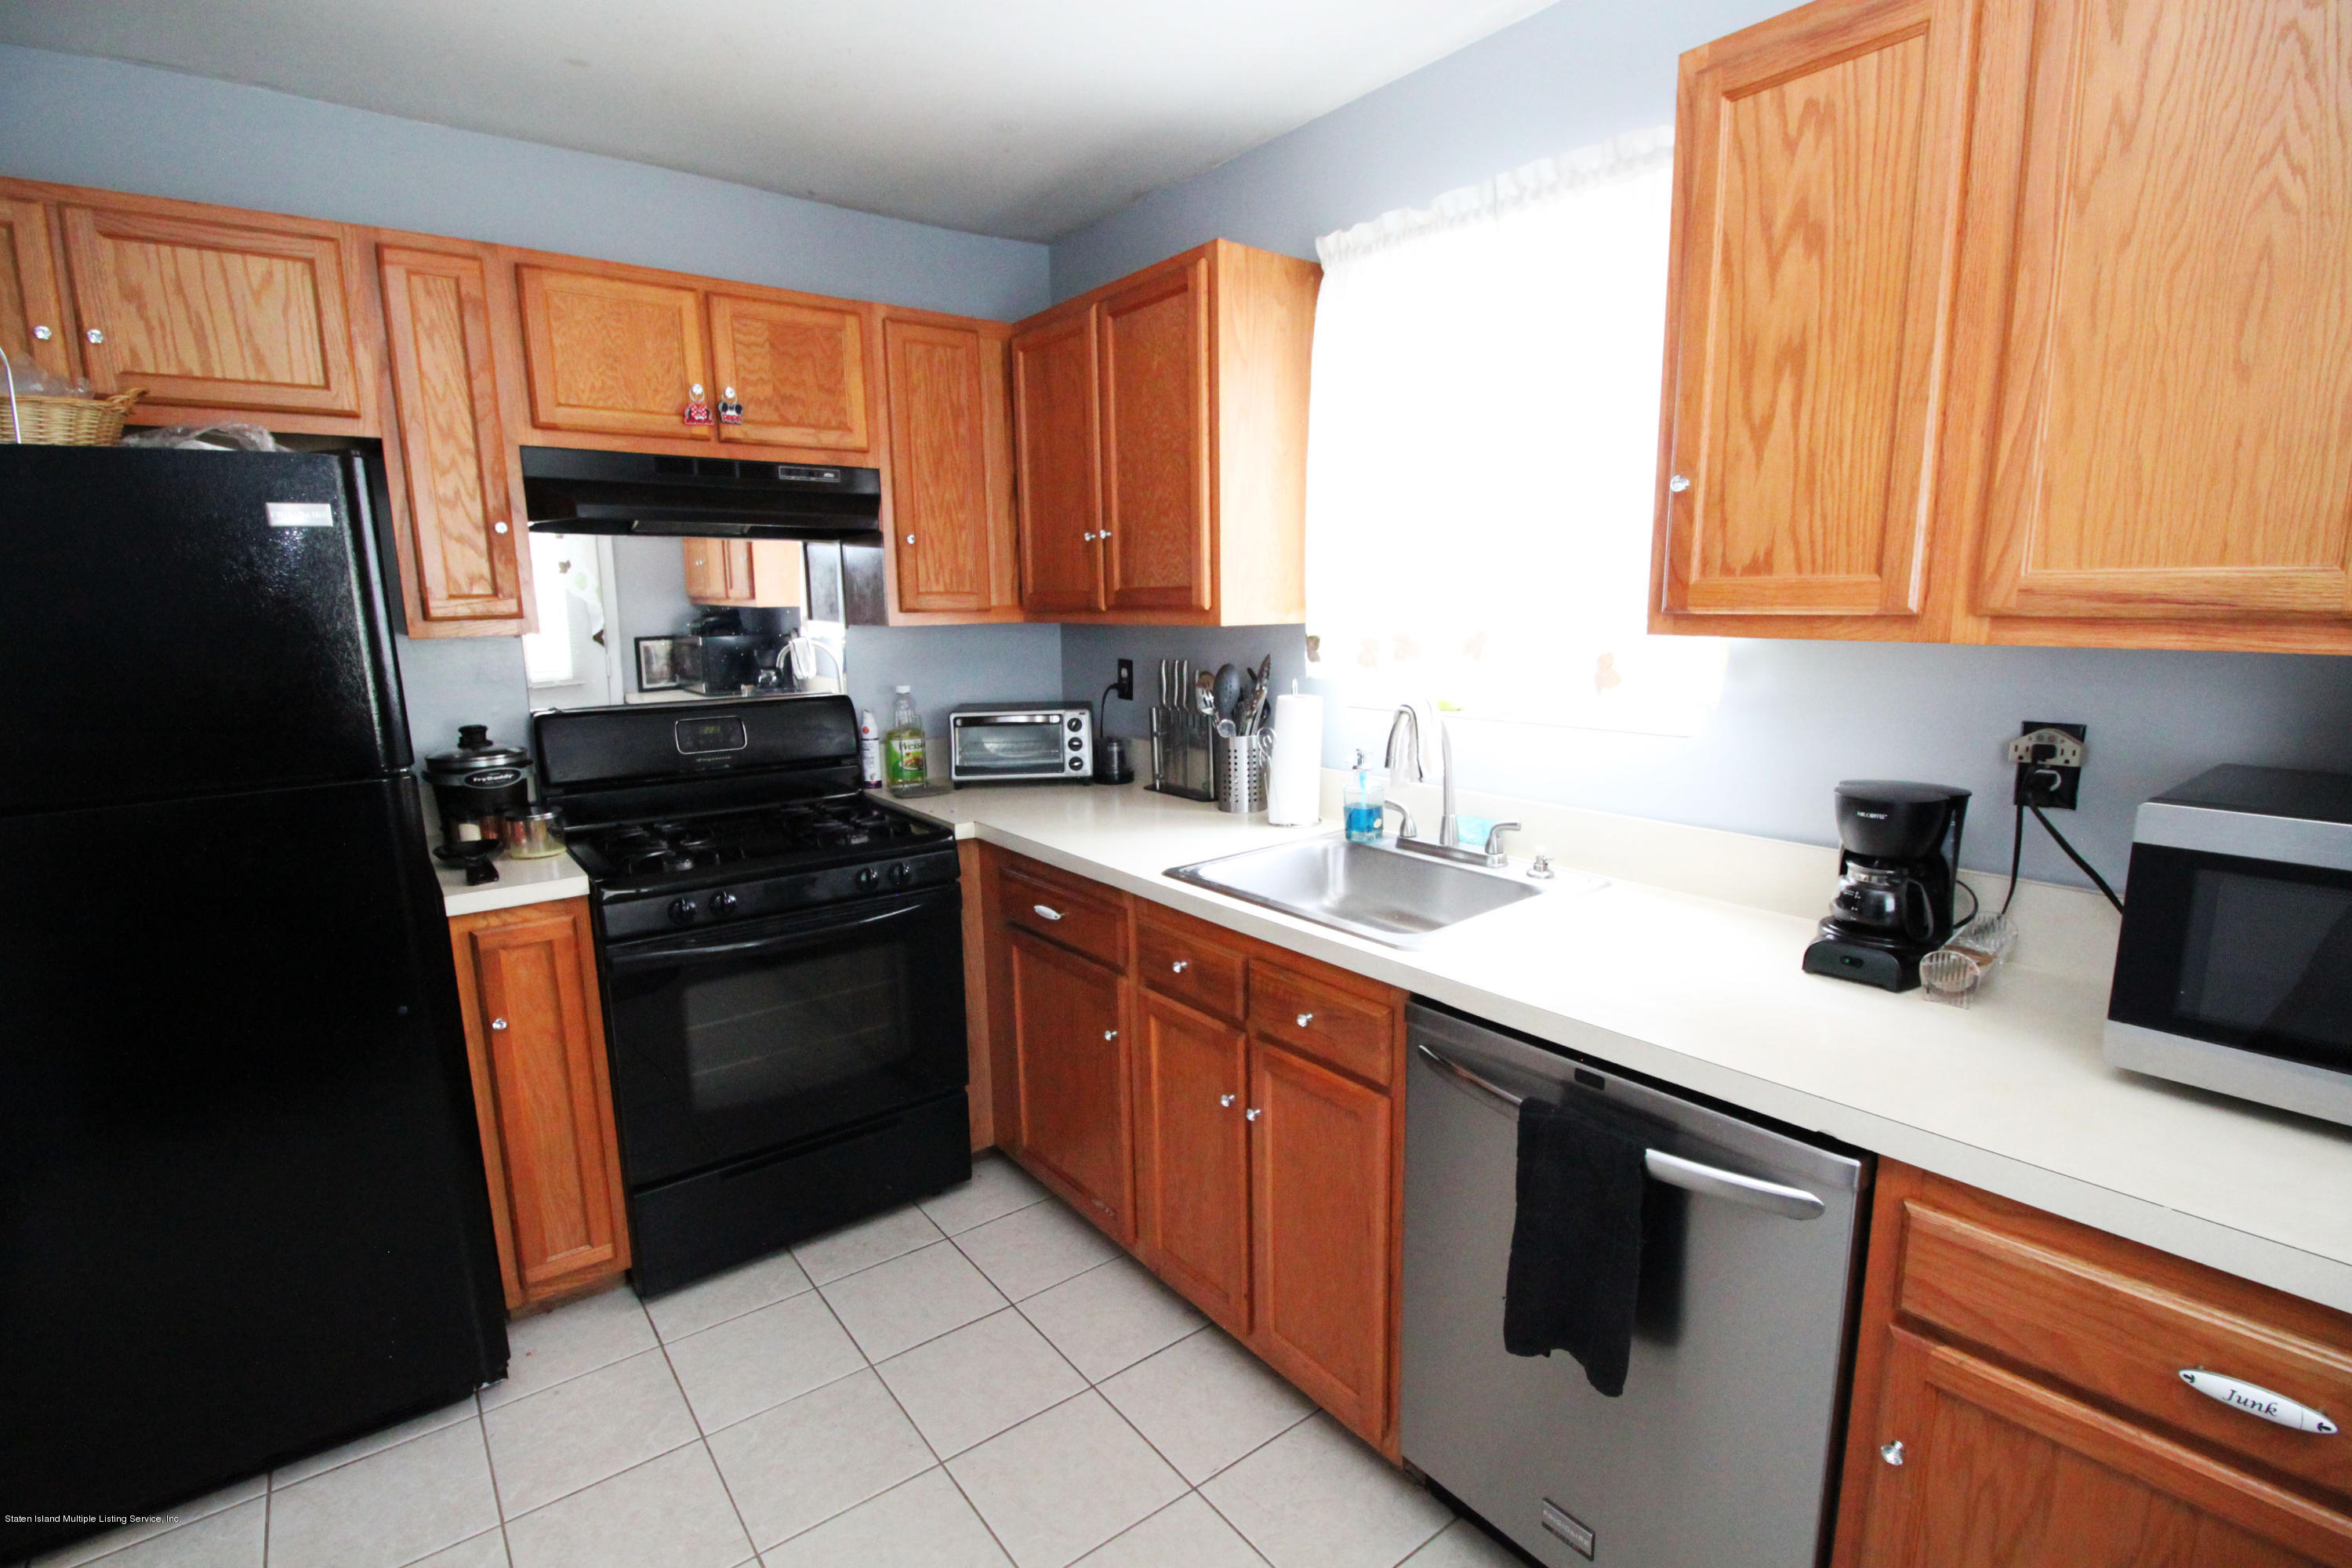 59 Hamilton Street,Staten Island,New York,10304,United States,3 Bedrooms Bedrooms,6 Rooms Rooms,3 BathroomsBathrooms,Res-Rental,Hamilton,1130787